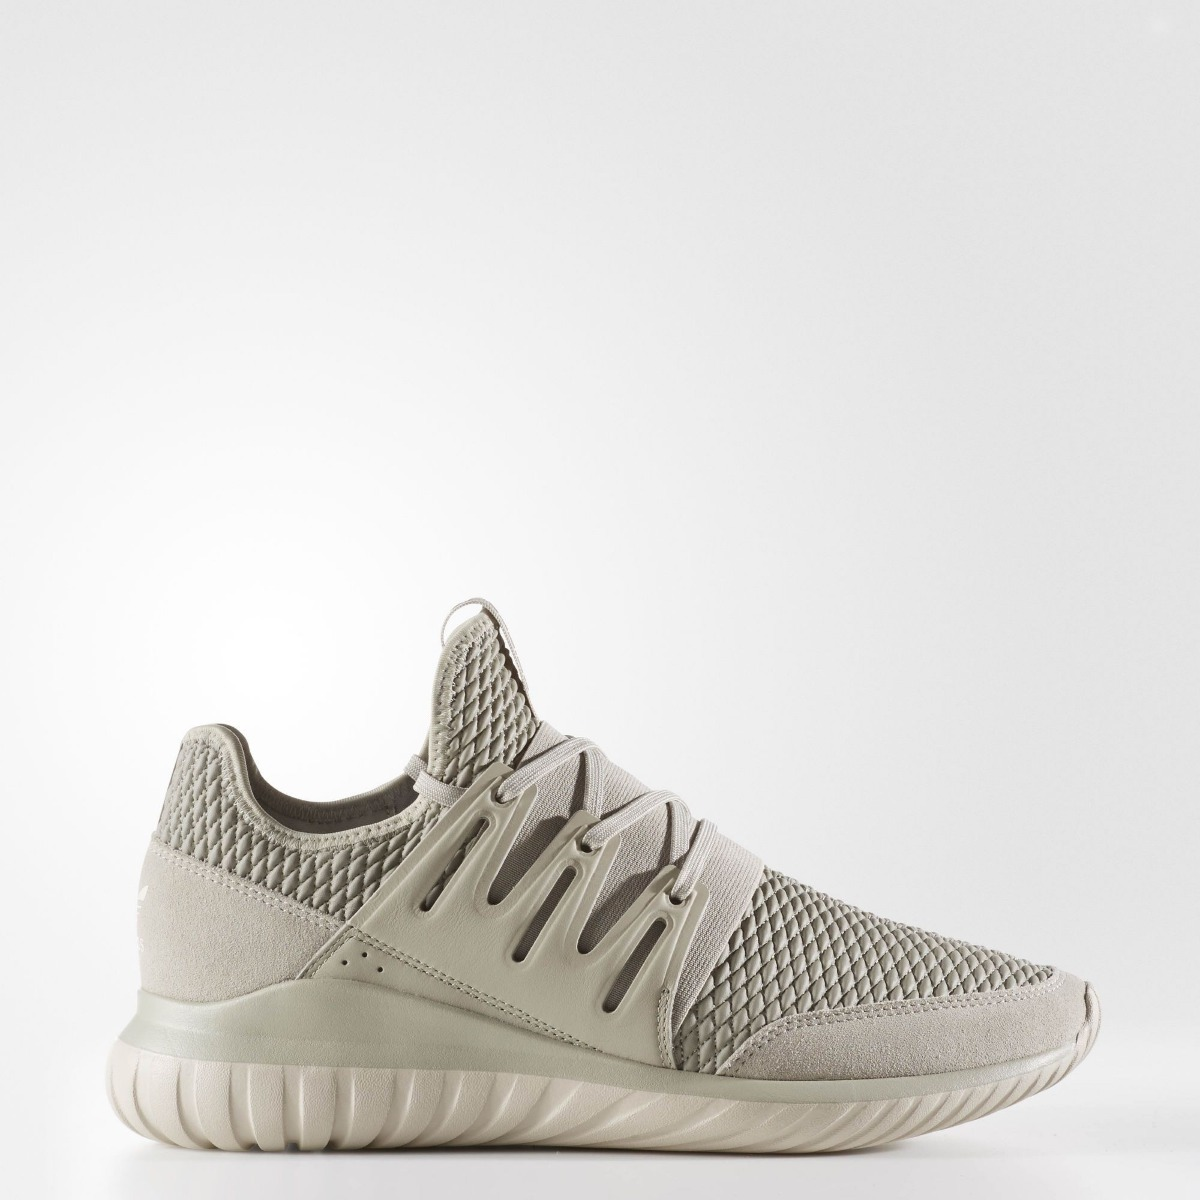 the best attitude 19d93 24195 tenis adidas original tubular radial hombre no. bb2397. Cargando zoom.